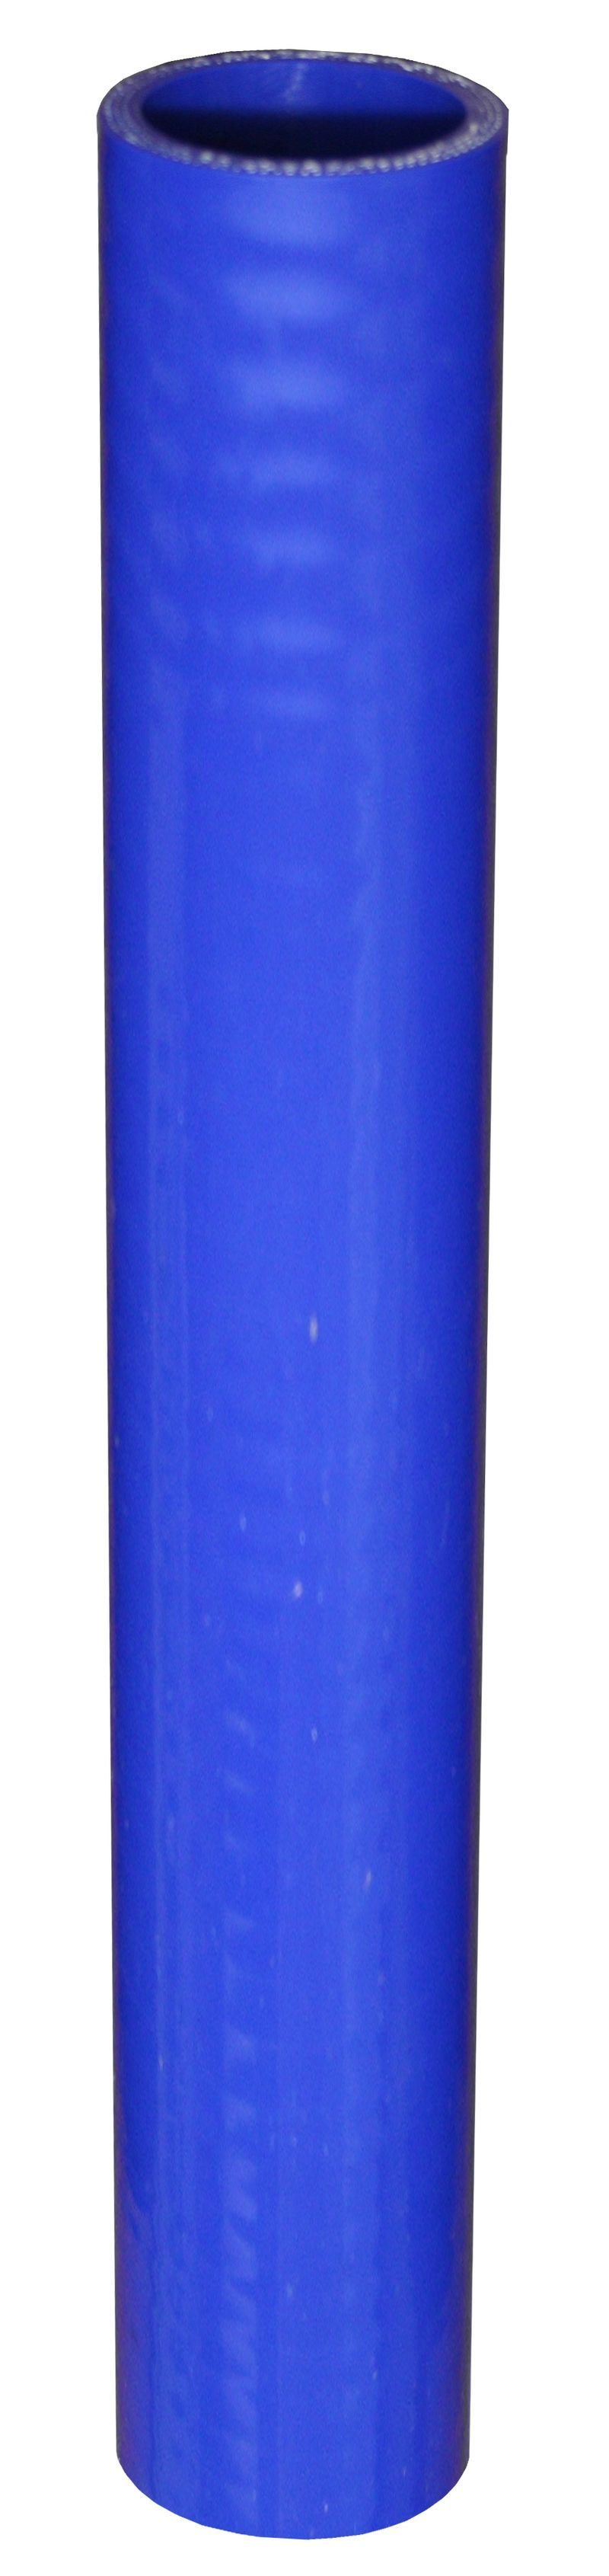 Silicon  Blue  Radiator   Hose  12 Inch Length  1.75 I.D.